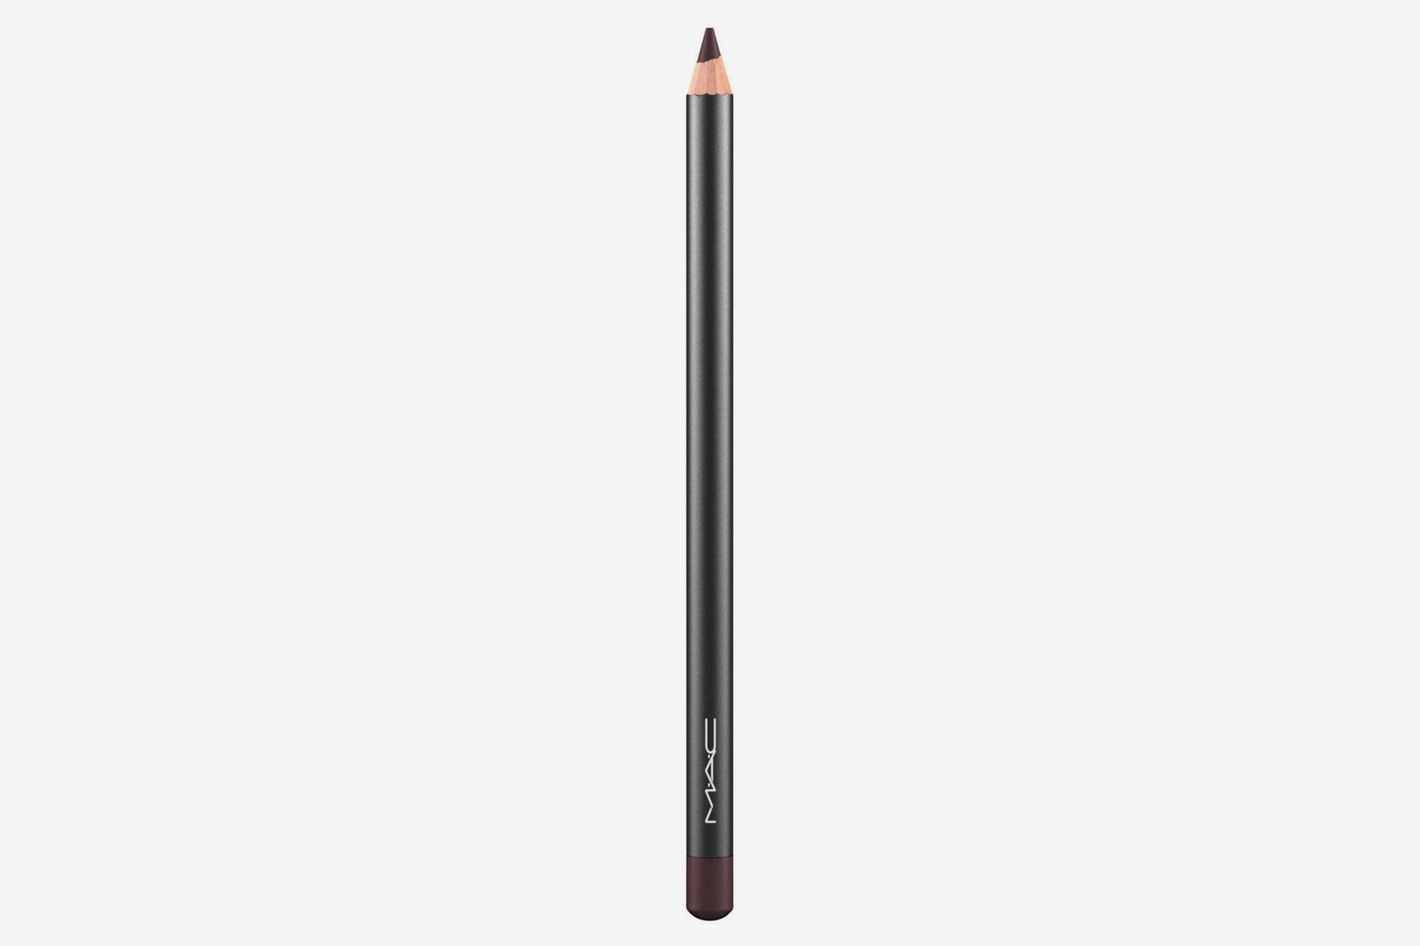 M.A.C Lip Pencil in Nightmoth